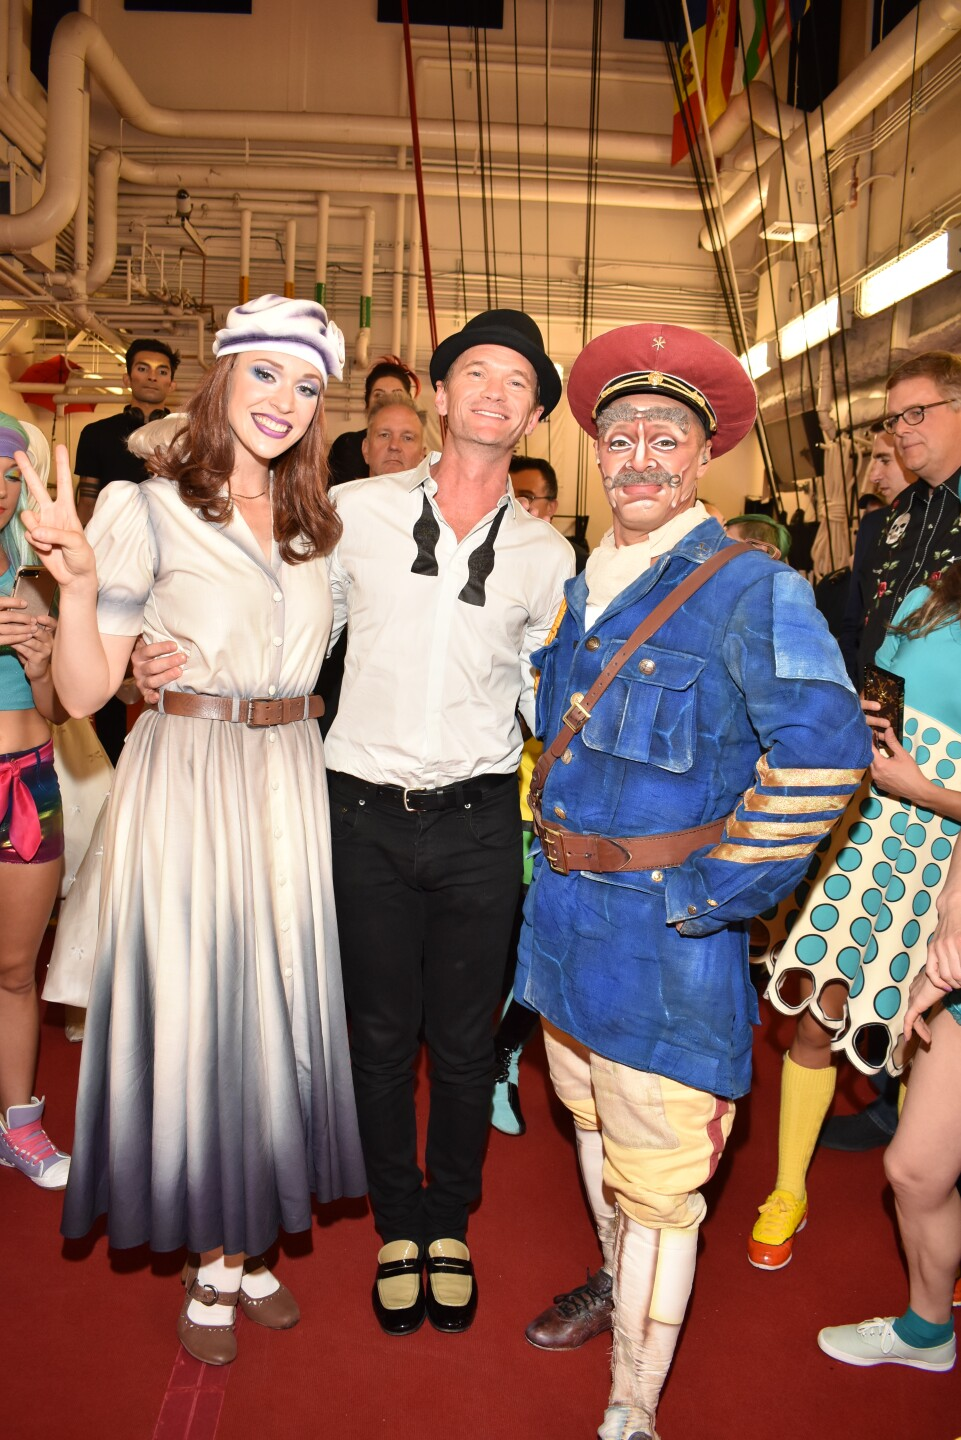 Neil Patrick Harris Poses with Characters from The Beatles LOVE by Cirque du Soleil, Sept. 27, 2019.jpg